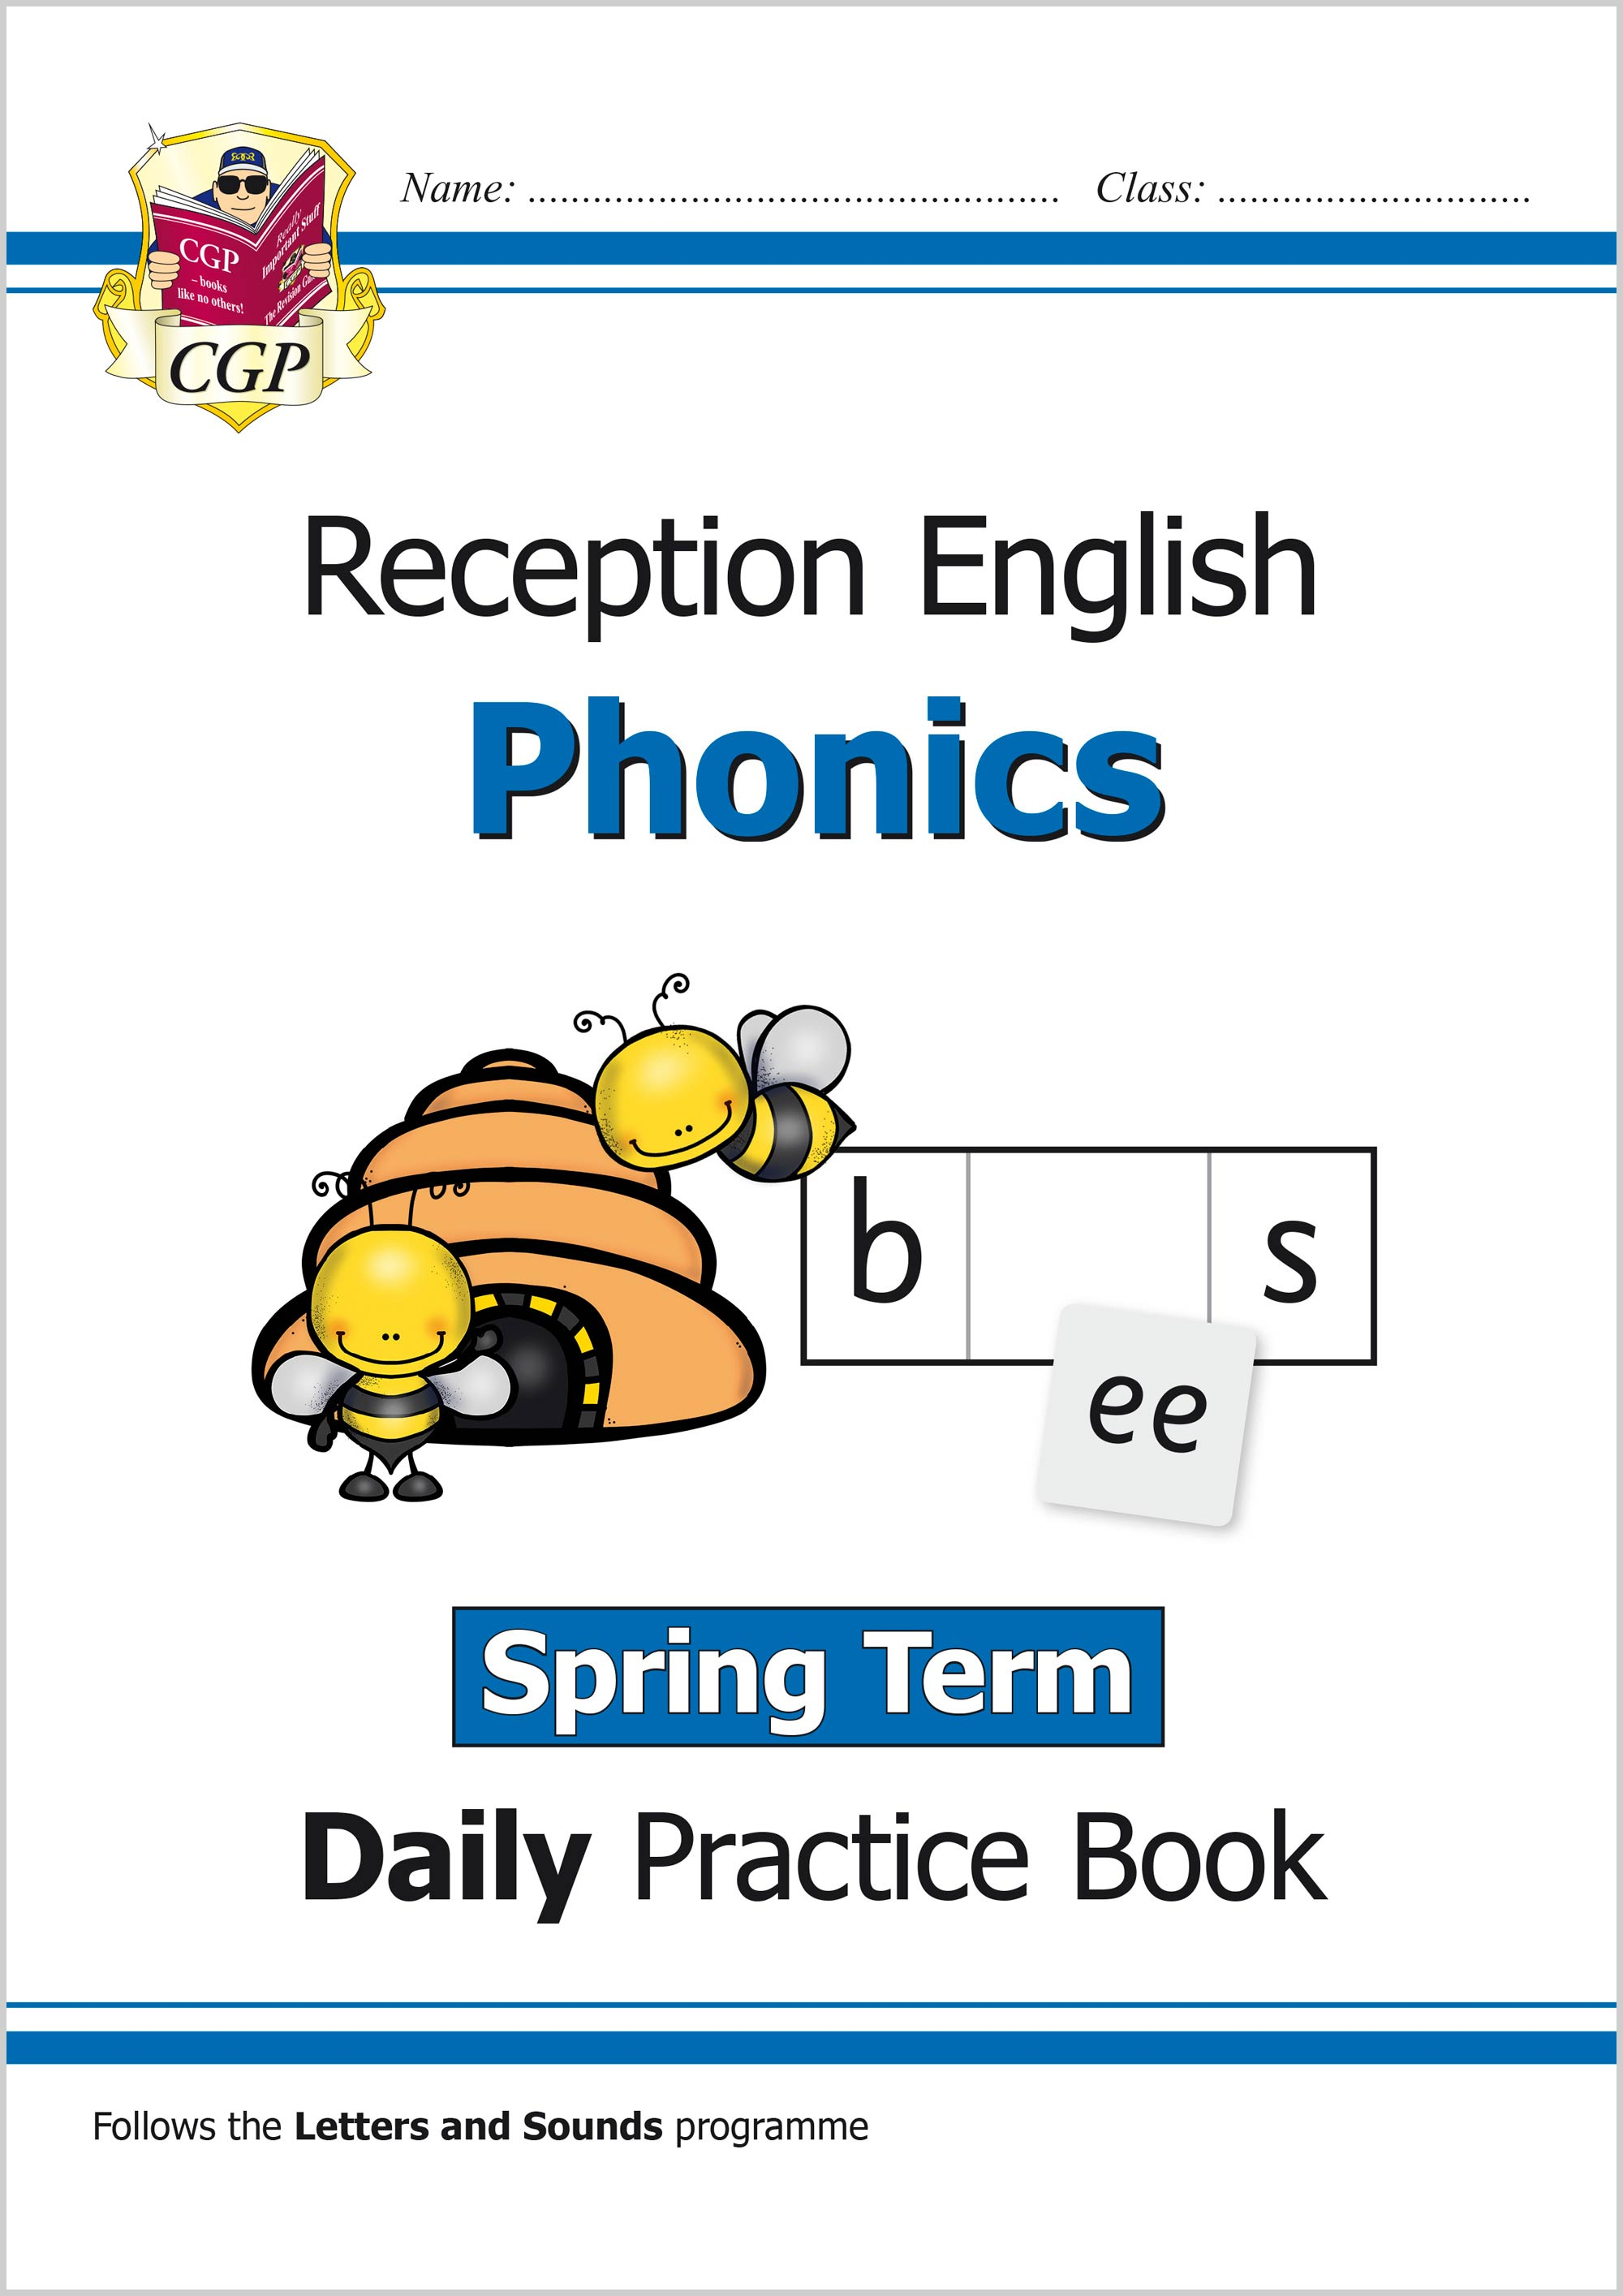 EROWSP11 - New Phonics Daily Practice Book: Reception - Spring Term